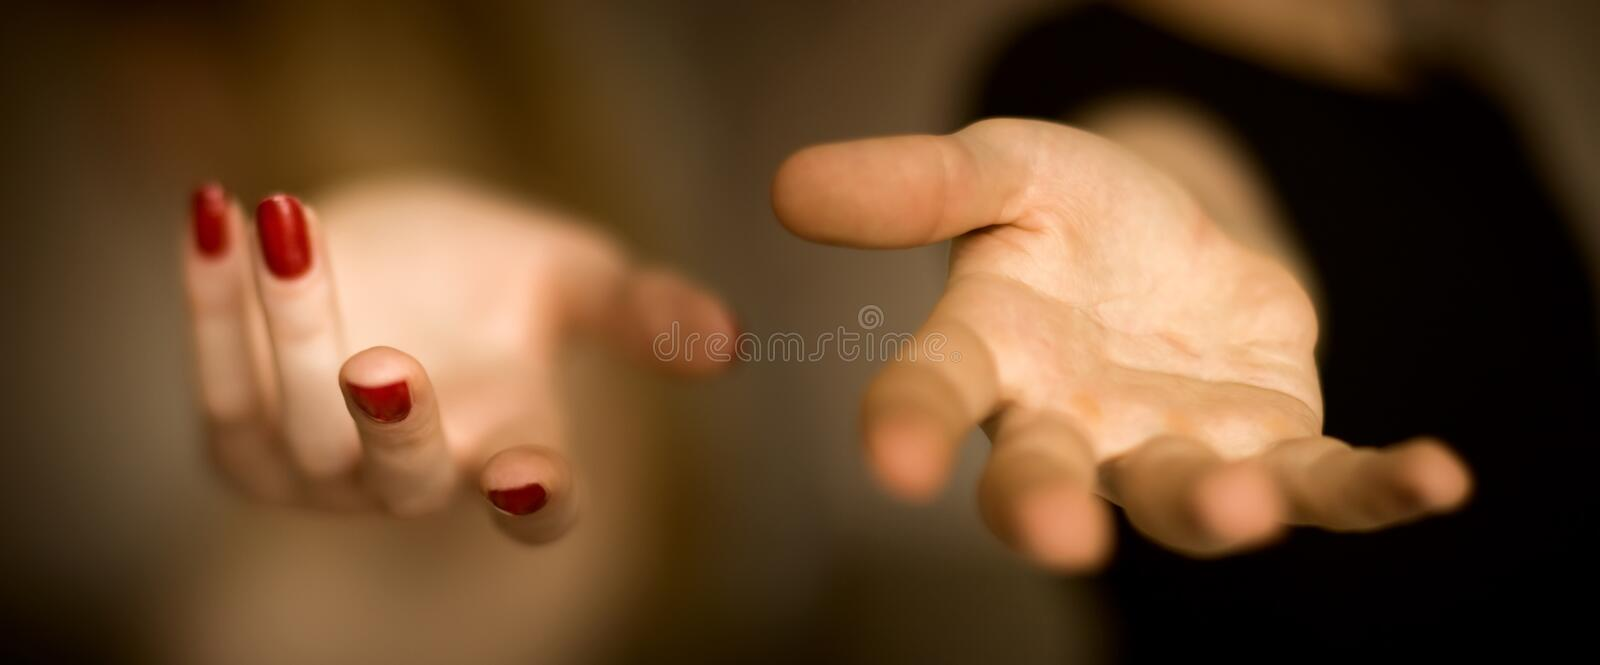 Download Male And Female Helping Hands Stock Image - Image: 2738415